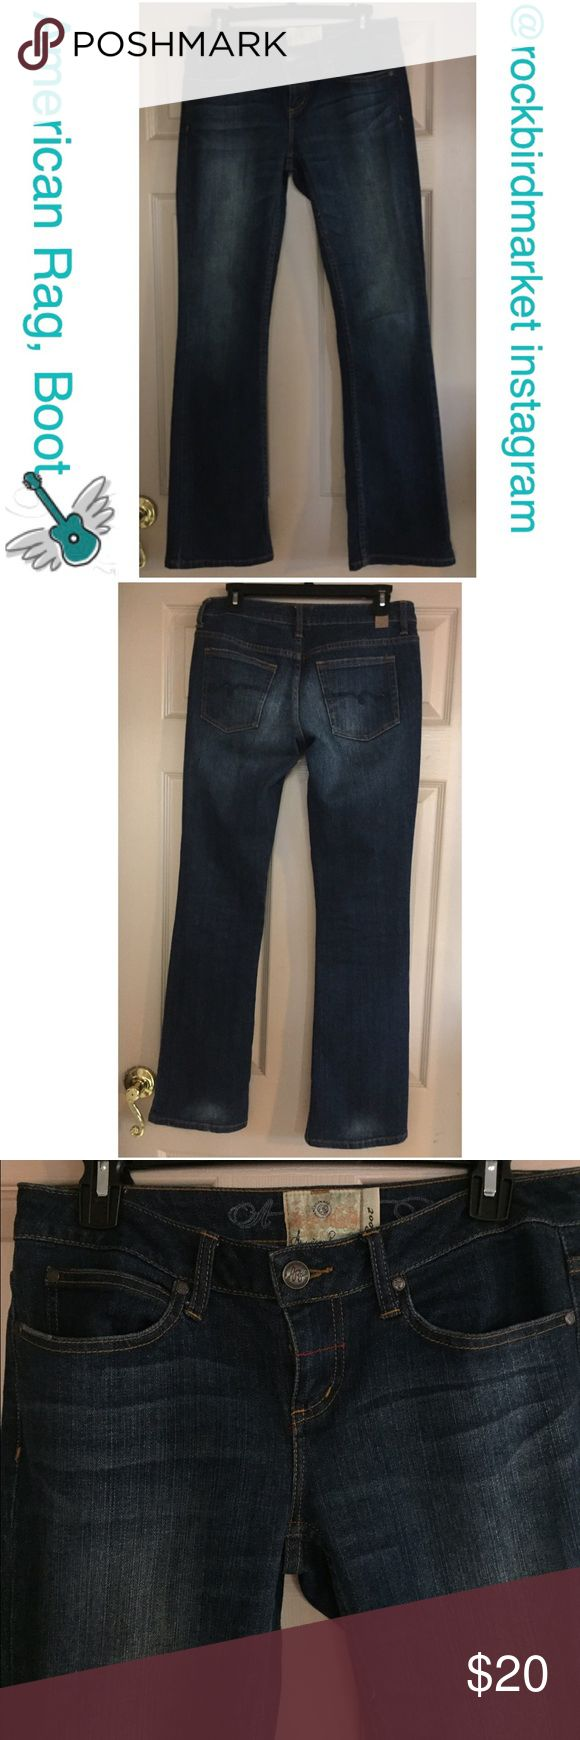 """American Rag jeans, ARC listed size is 5 Regular Great jeans in gently used condition. Waist is about 16"""" across laid flat. Inseam is about 32"""". Slight wear on bottom hem, otherwise they are near-perfect. American Rag Jeans Boot Cut"""